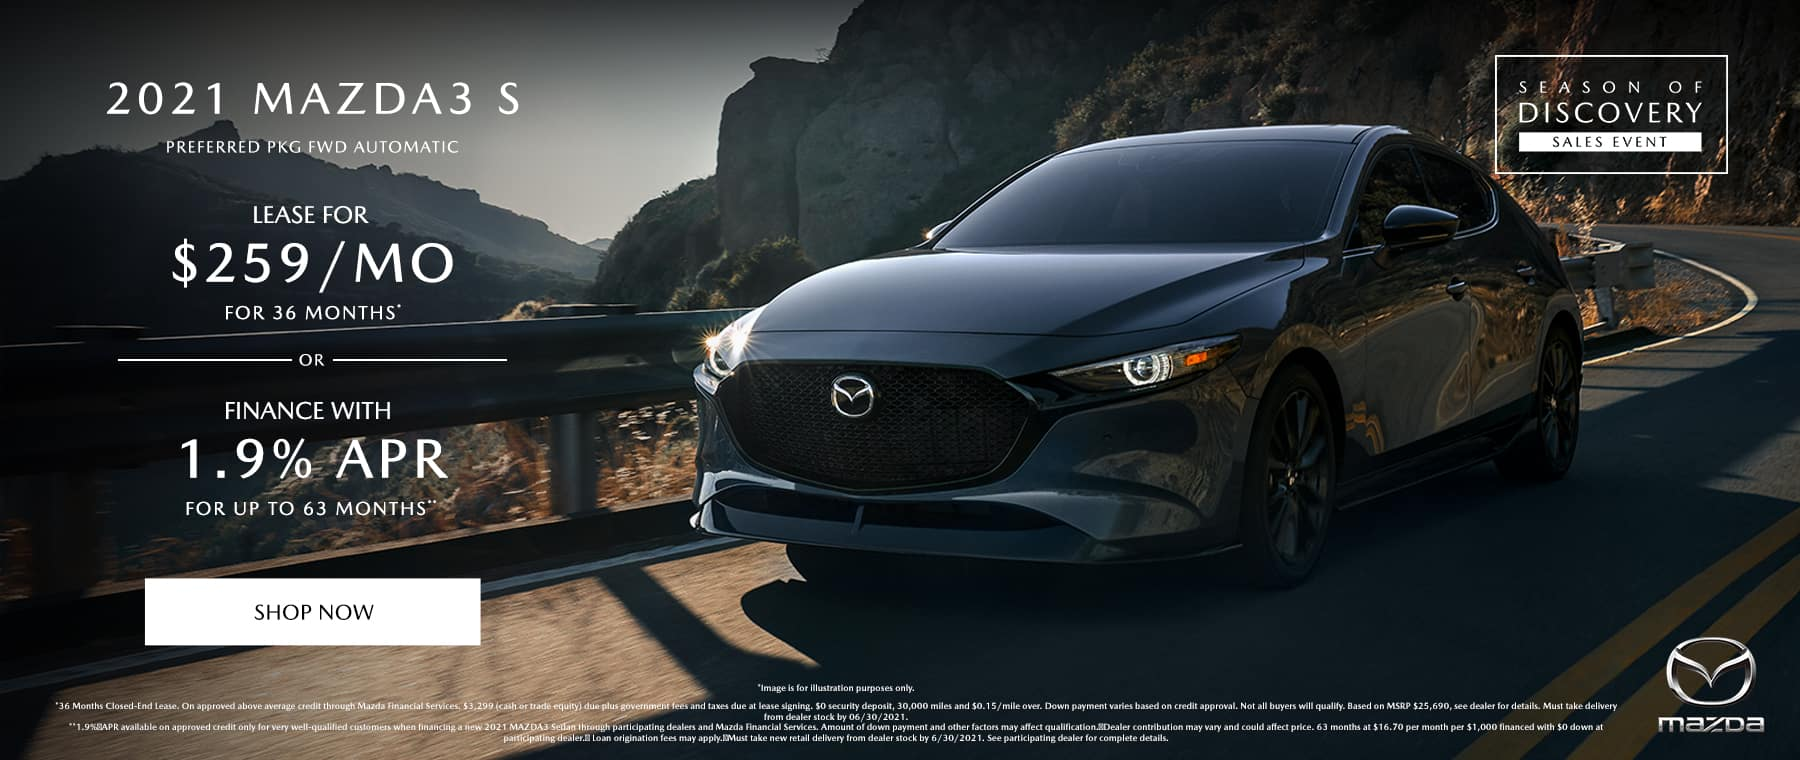 2021 MAZDA MAZDA3 SEDAN PREFERRED PKG FWD AUTOMATIC (MODEL#M3SPF2A), 1.9% APR for up to 63 Months**